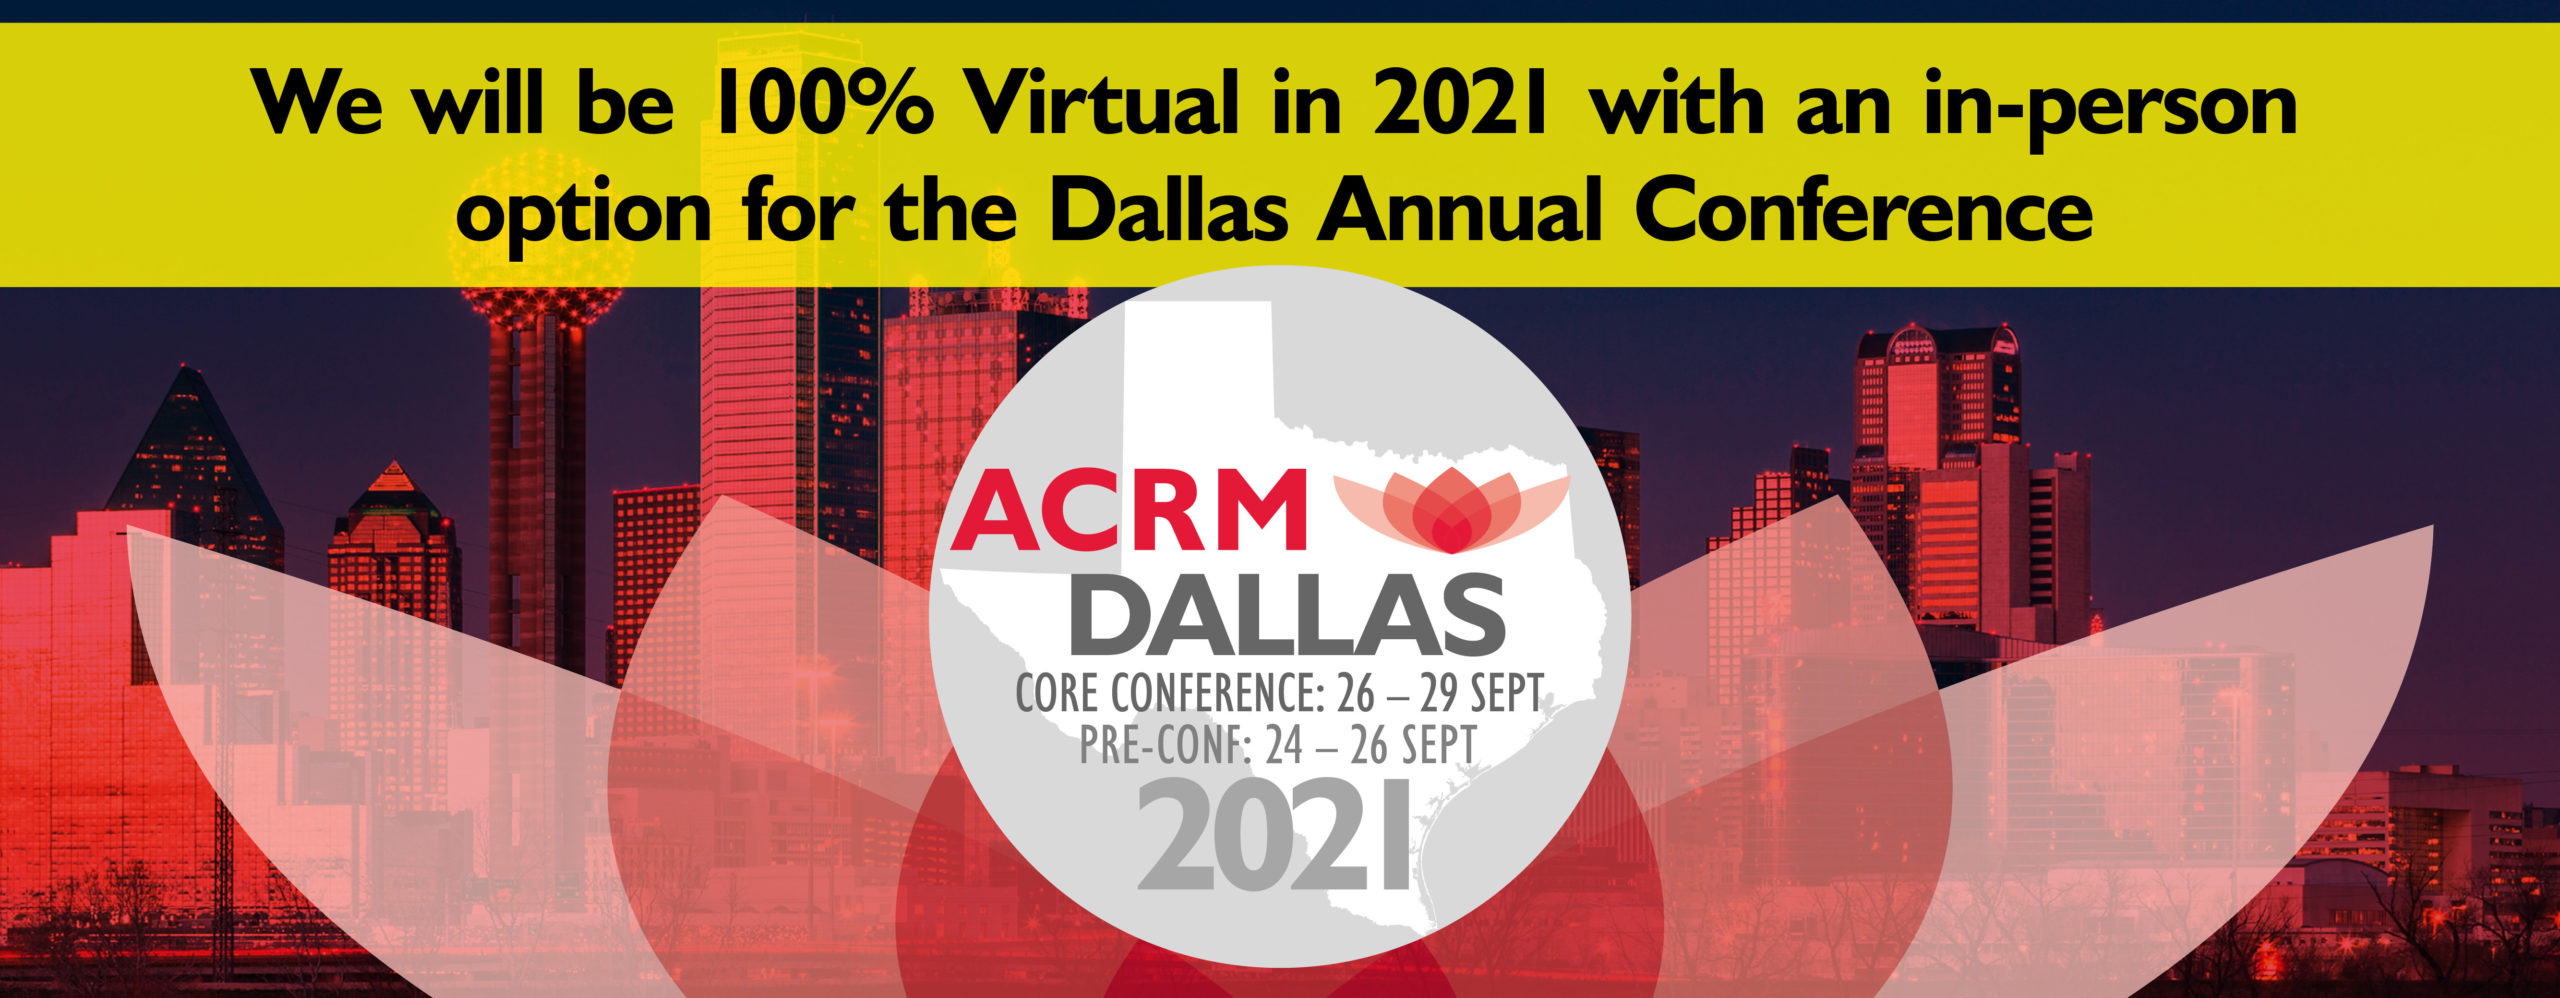 2021 Annual Conference Virtual Image